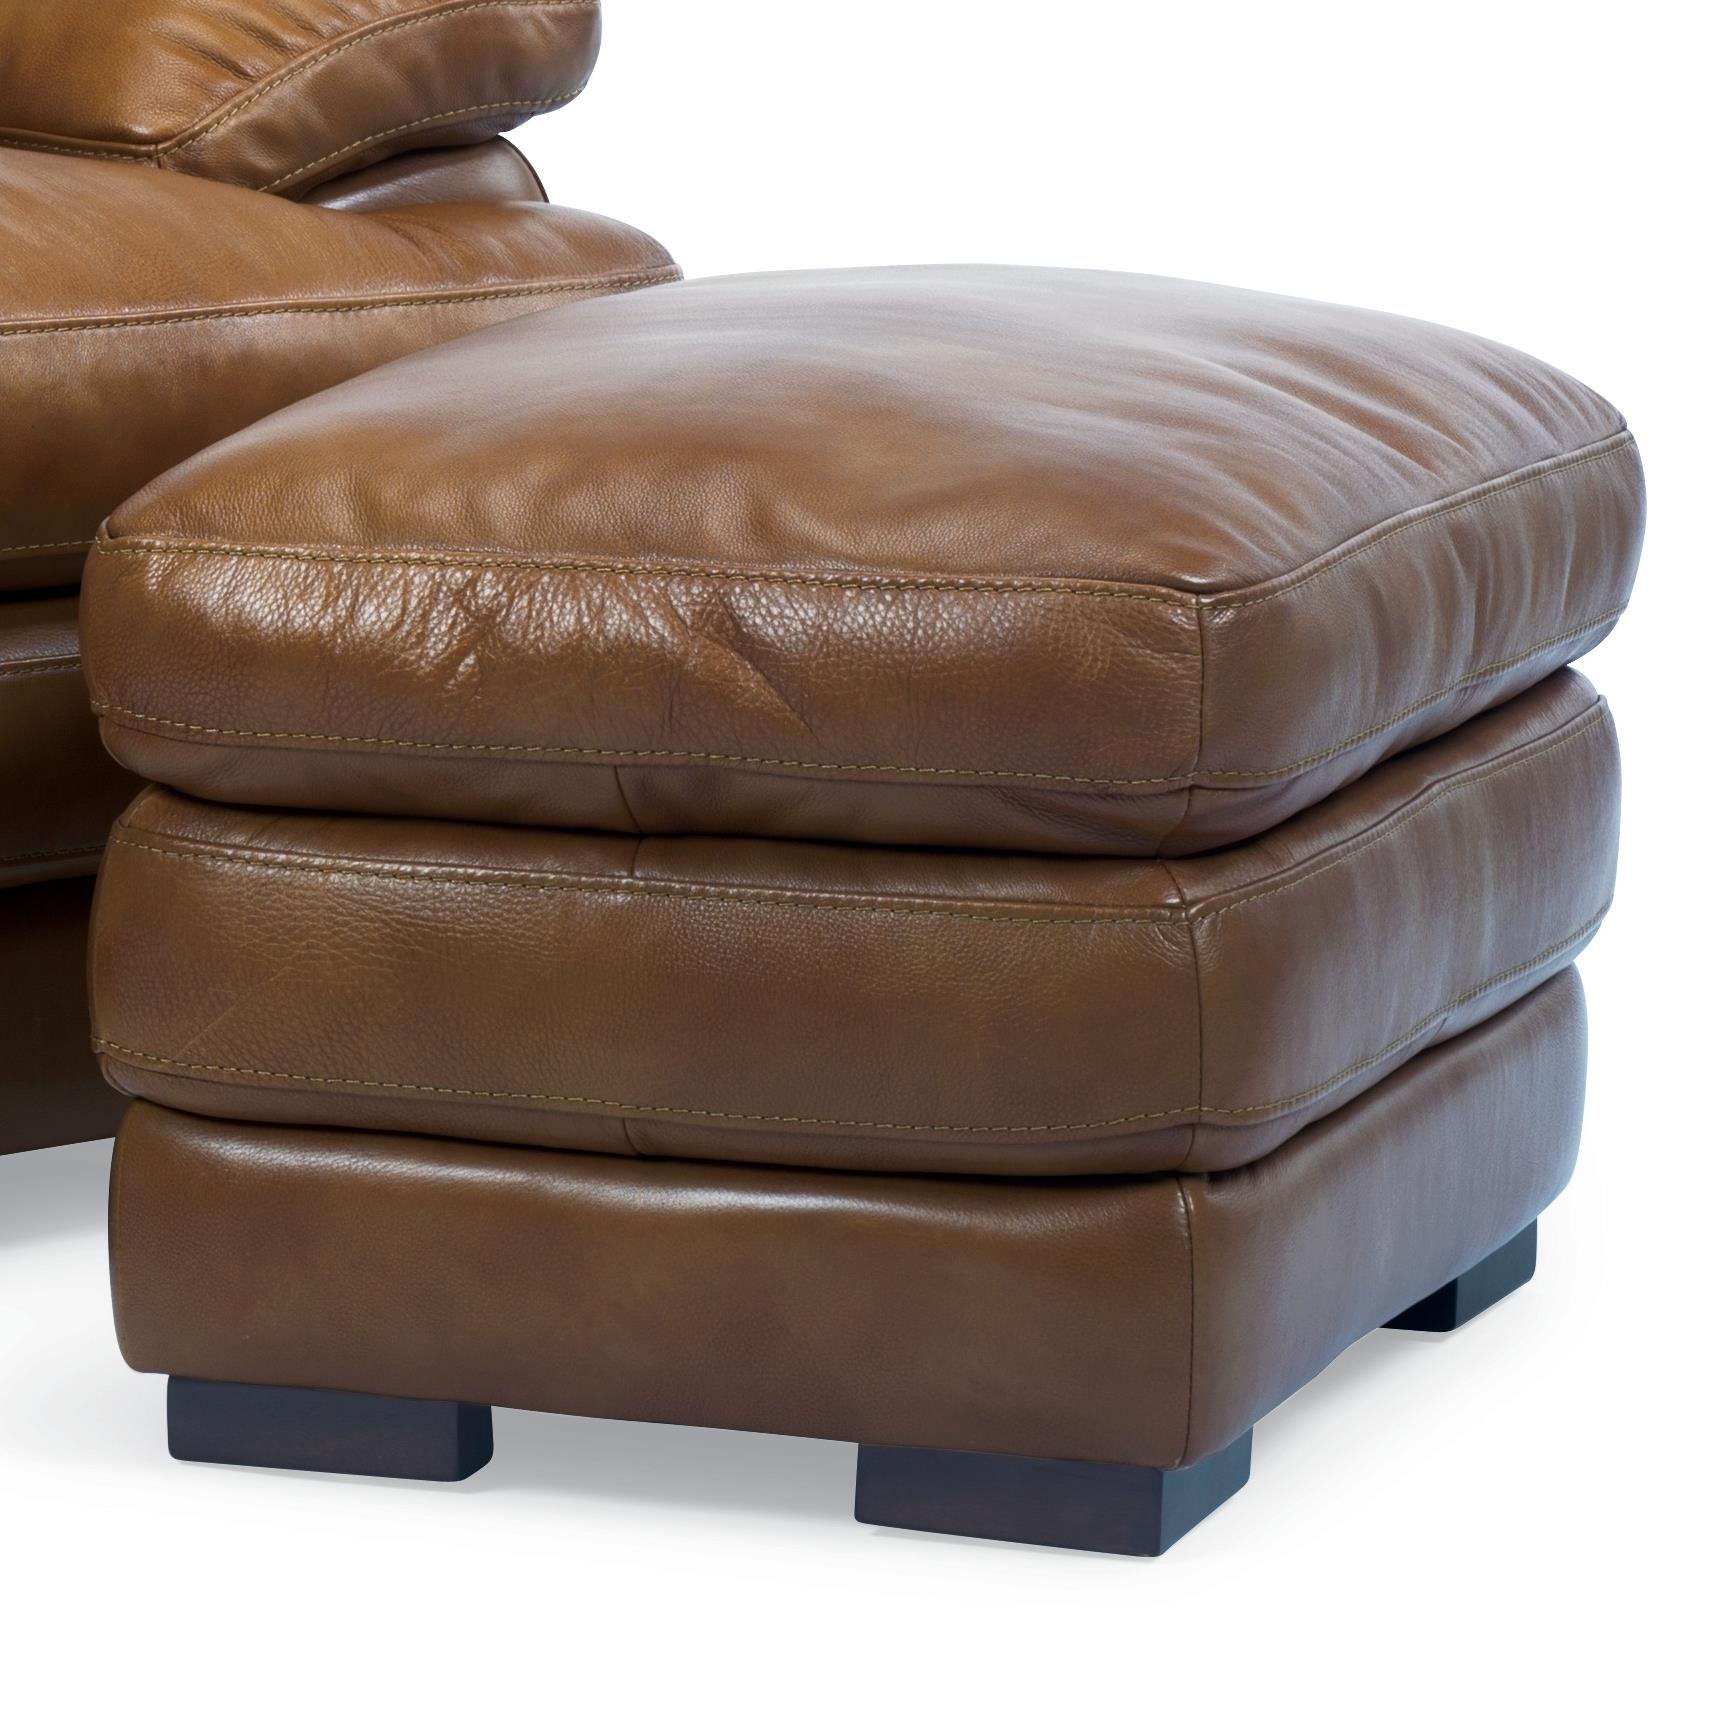 Flexsteel Latitudes - Dylan Leather Ottoman - Item Number: 1127-08-908-80